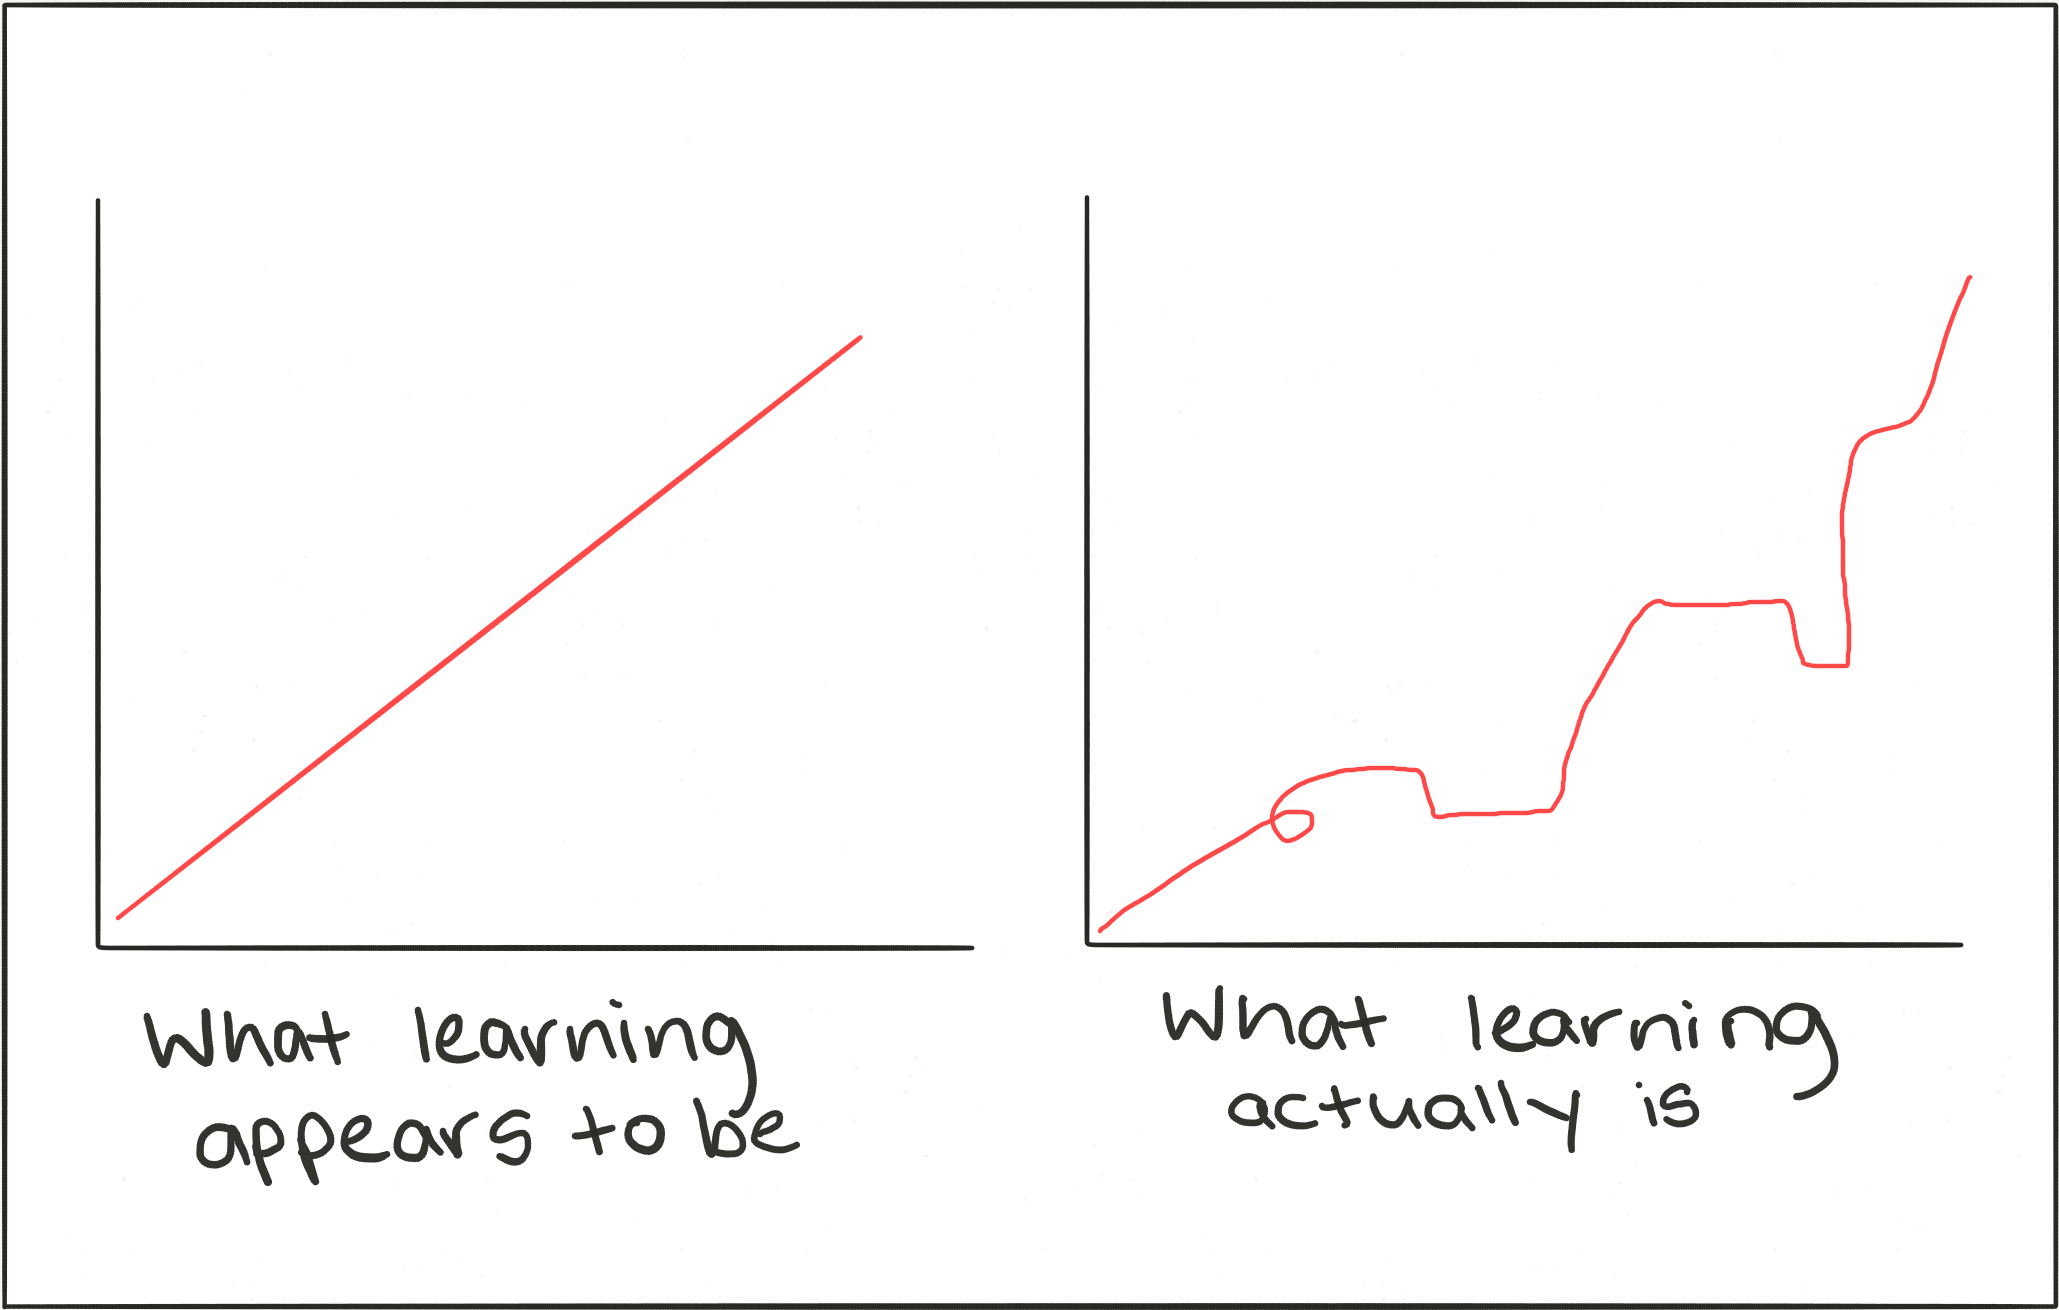 Learning looks more like a broken staircase than a straight line.